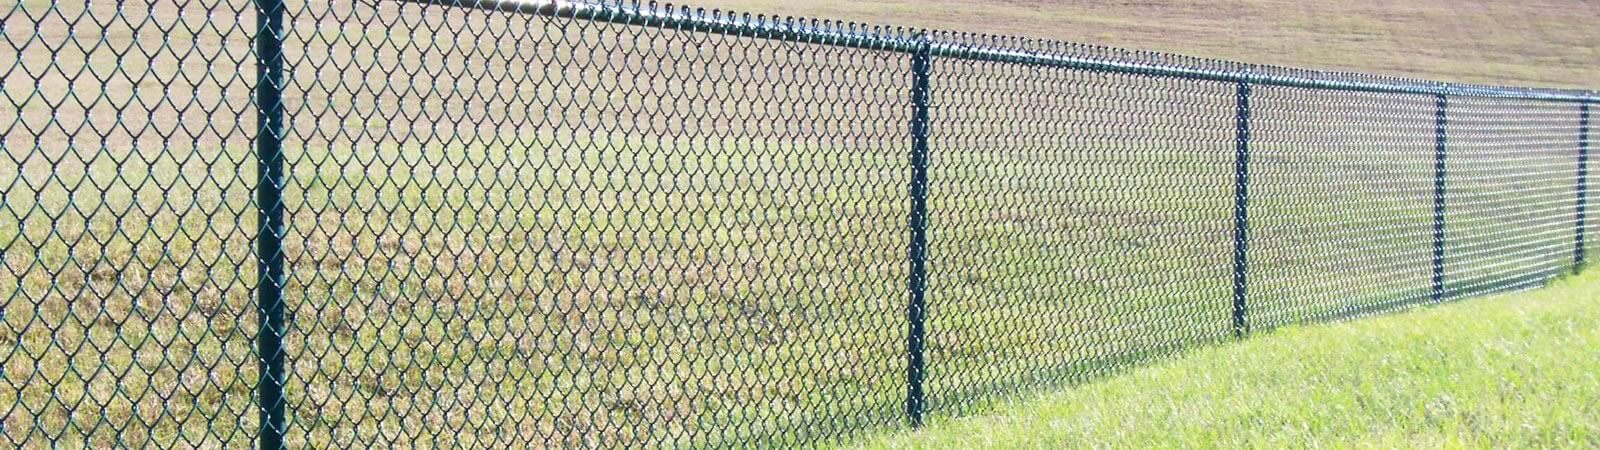 Chain Link Fence Contractor South Texas Fence And Deck